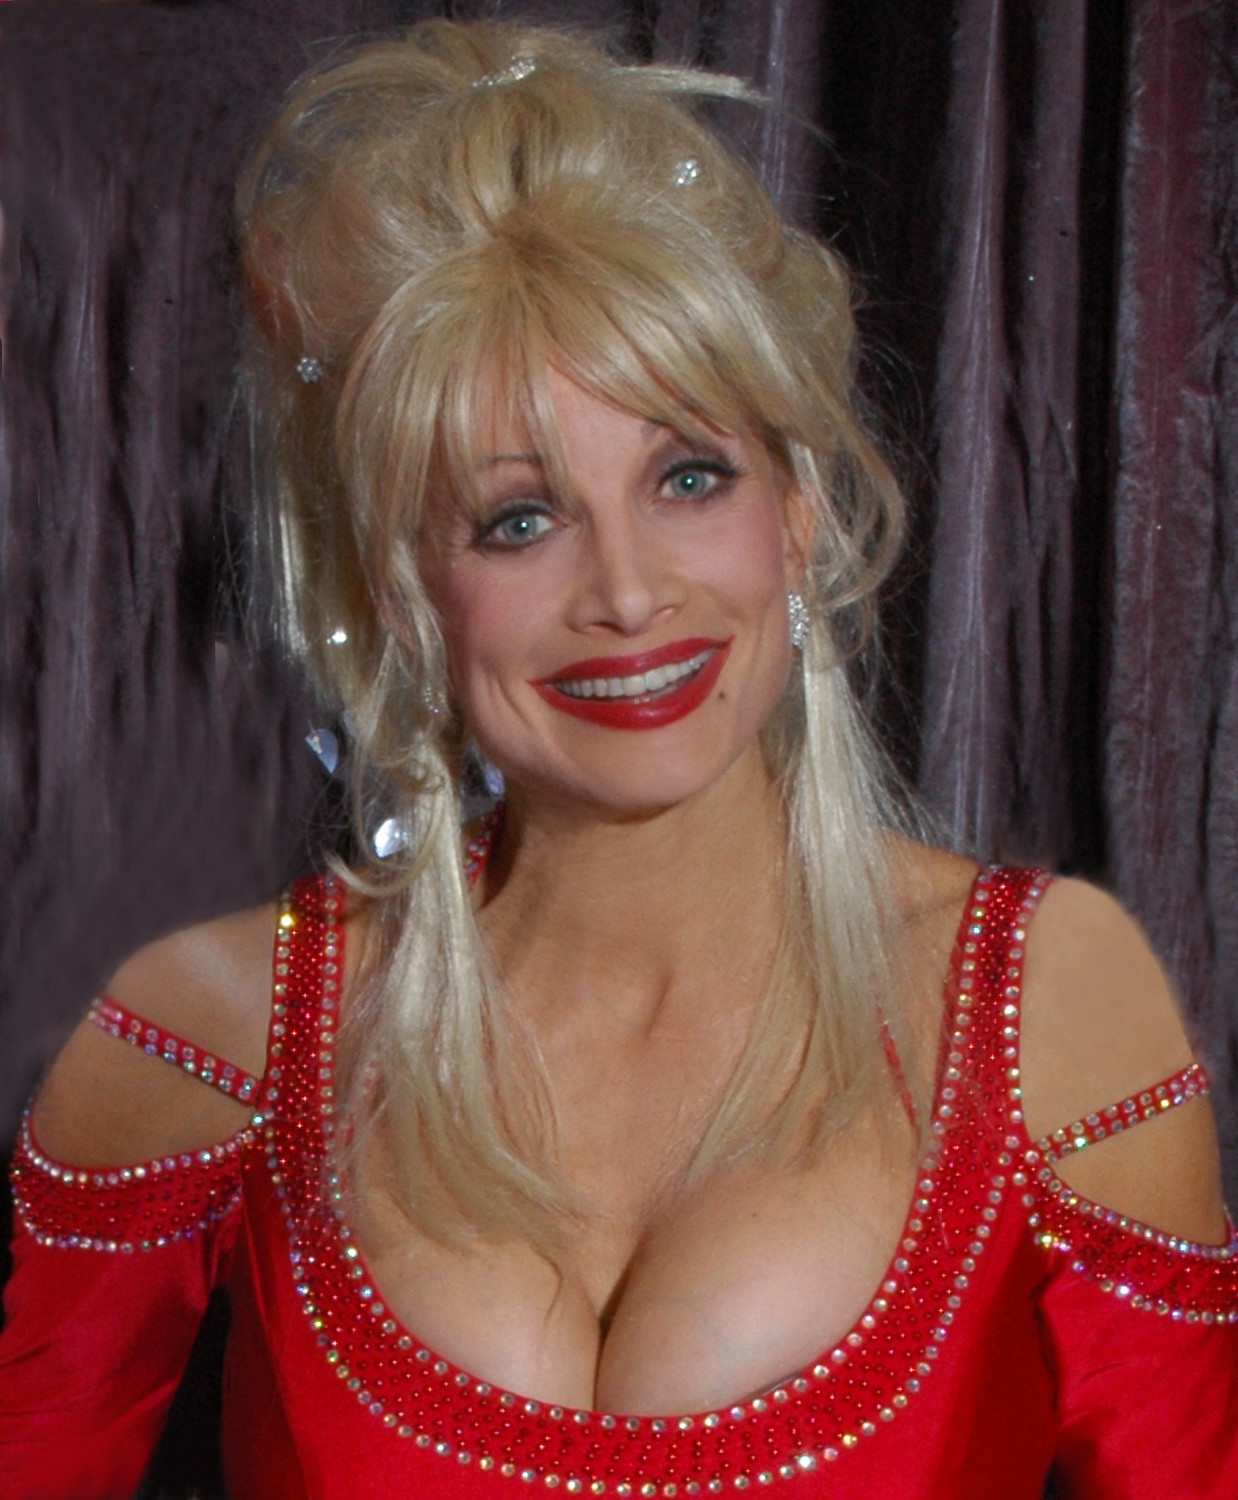 Dolly parton breast naked what that